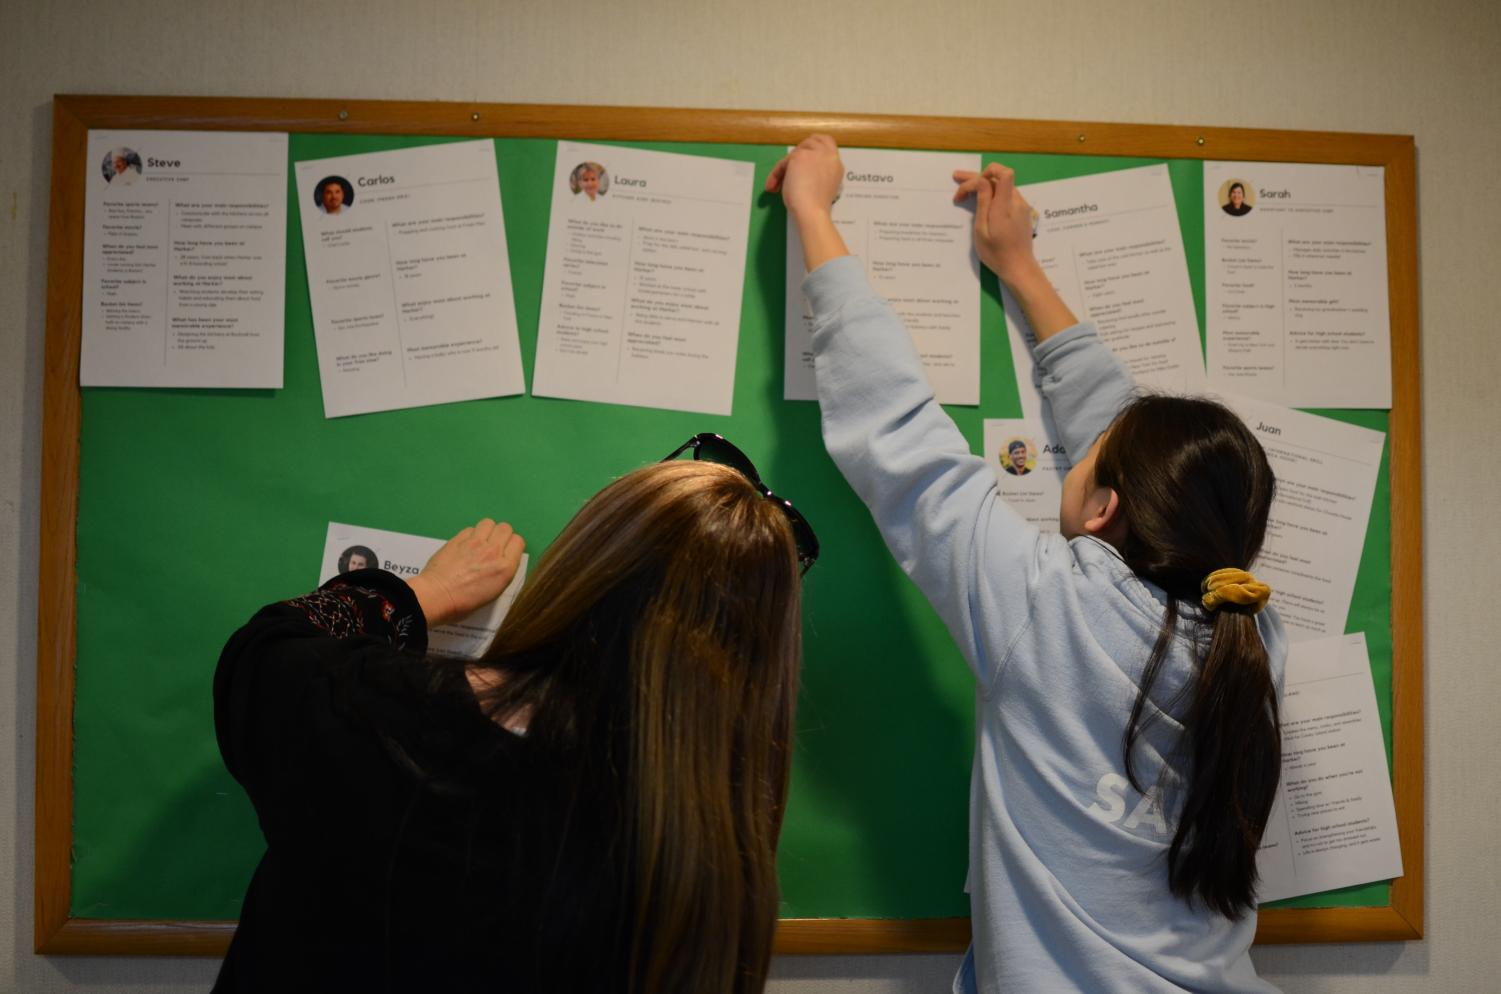 Director of Community Service Kerry Enzensperger and Alyssa Huang (11) position the posters. LIFE agreed to lend their bulletin board to the Appreciation Committee.